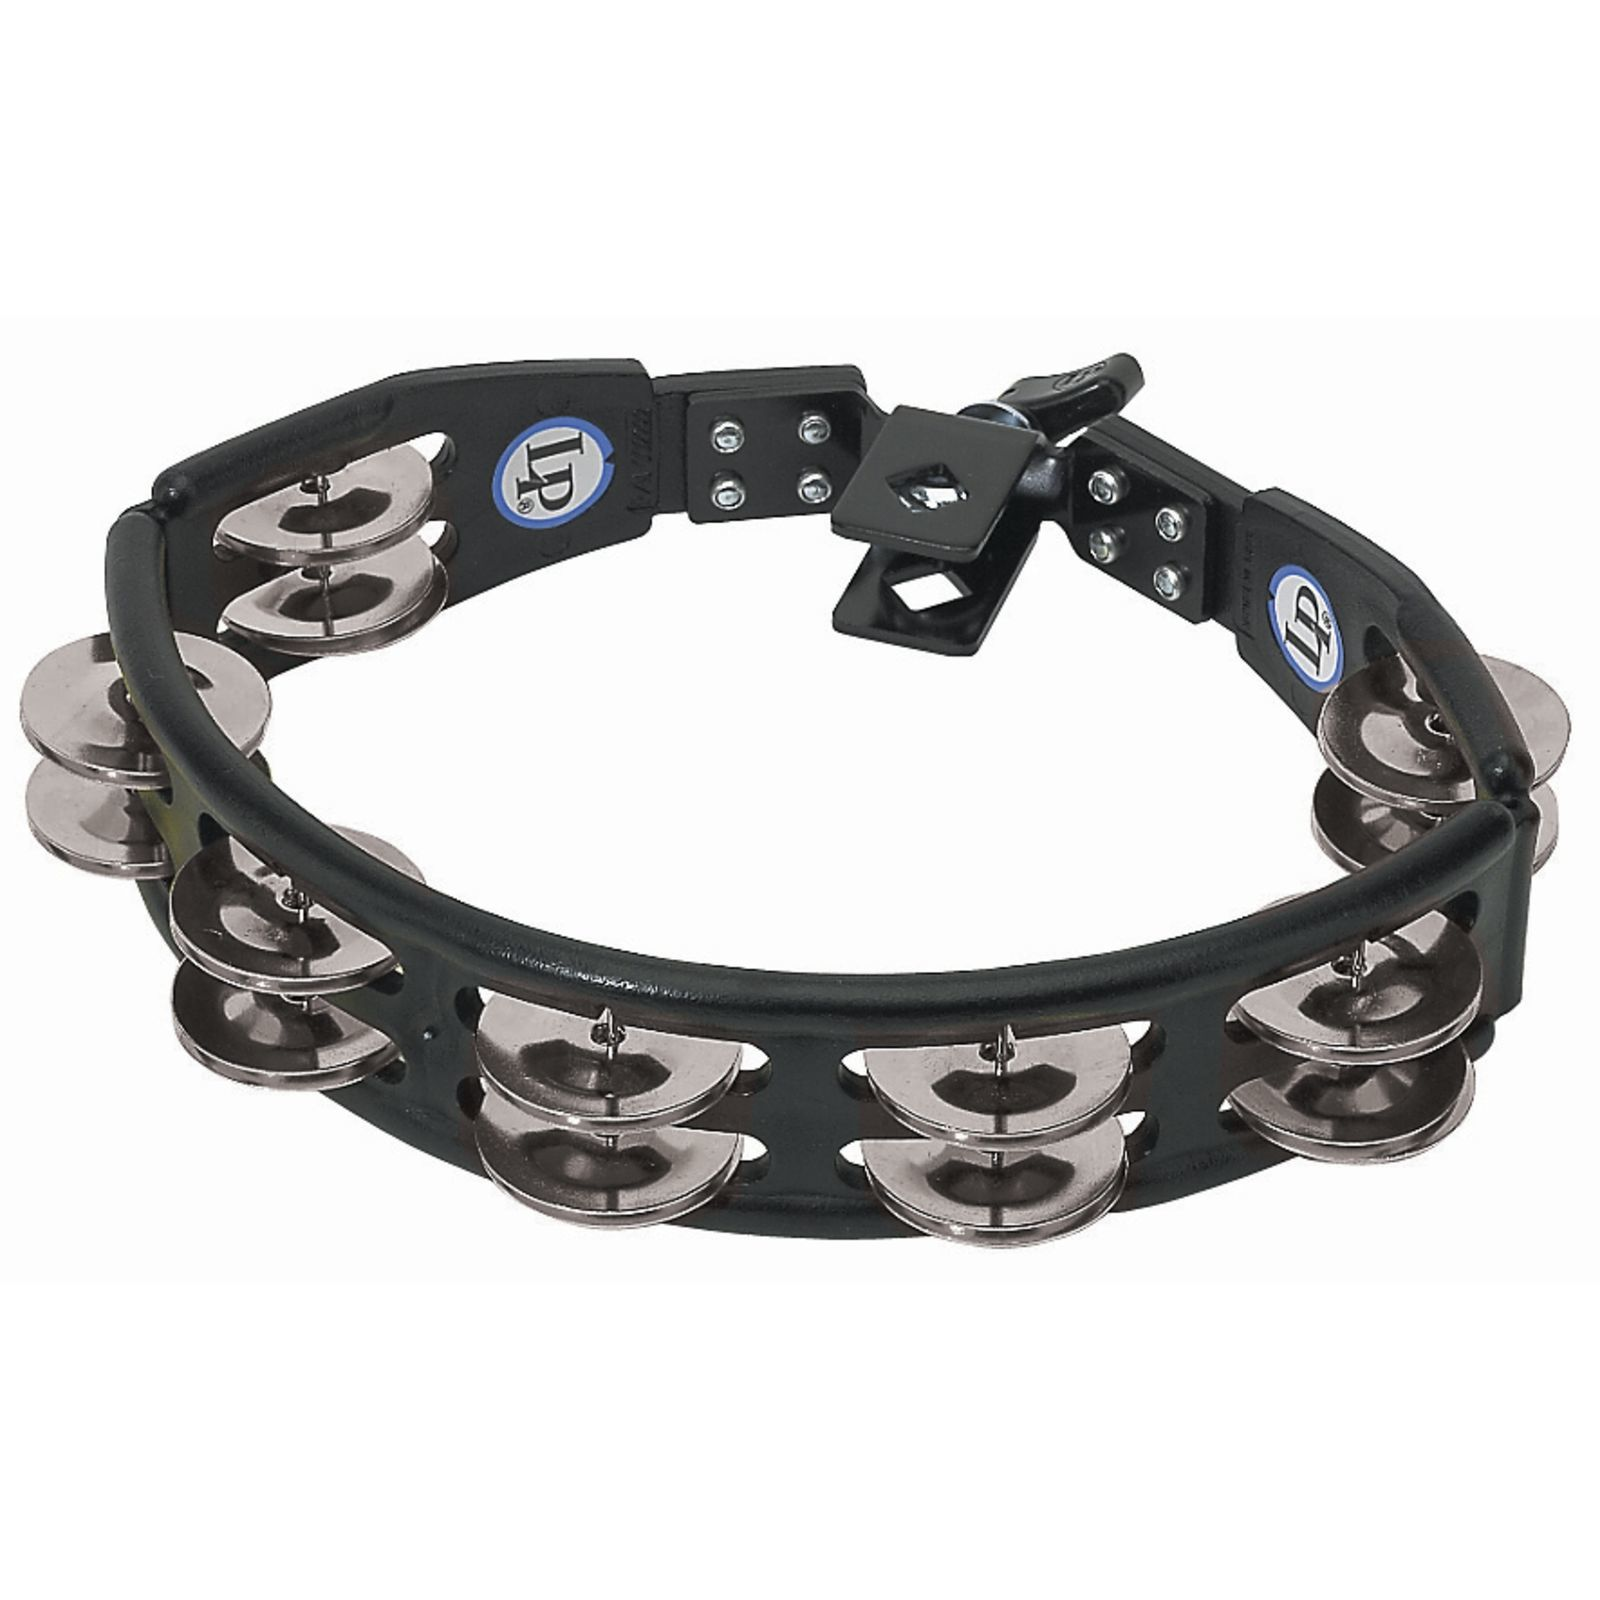 Latin Percussion Cyclops Set Tambourine LP160, black, steel jingles Produktbillede